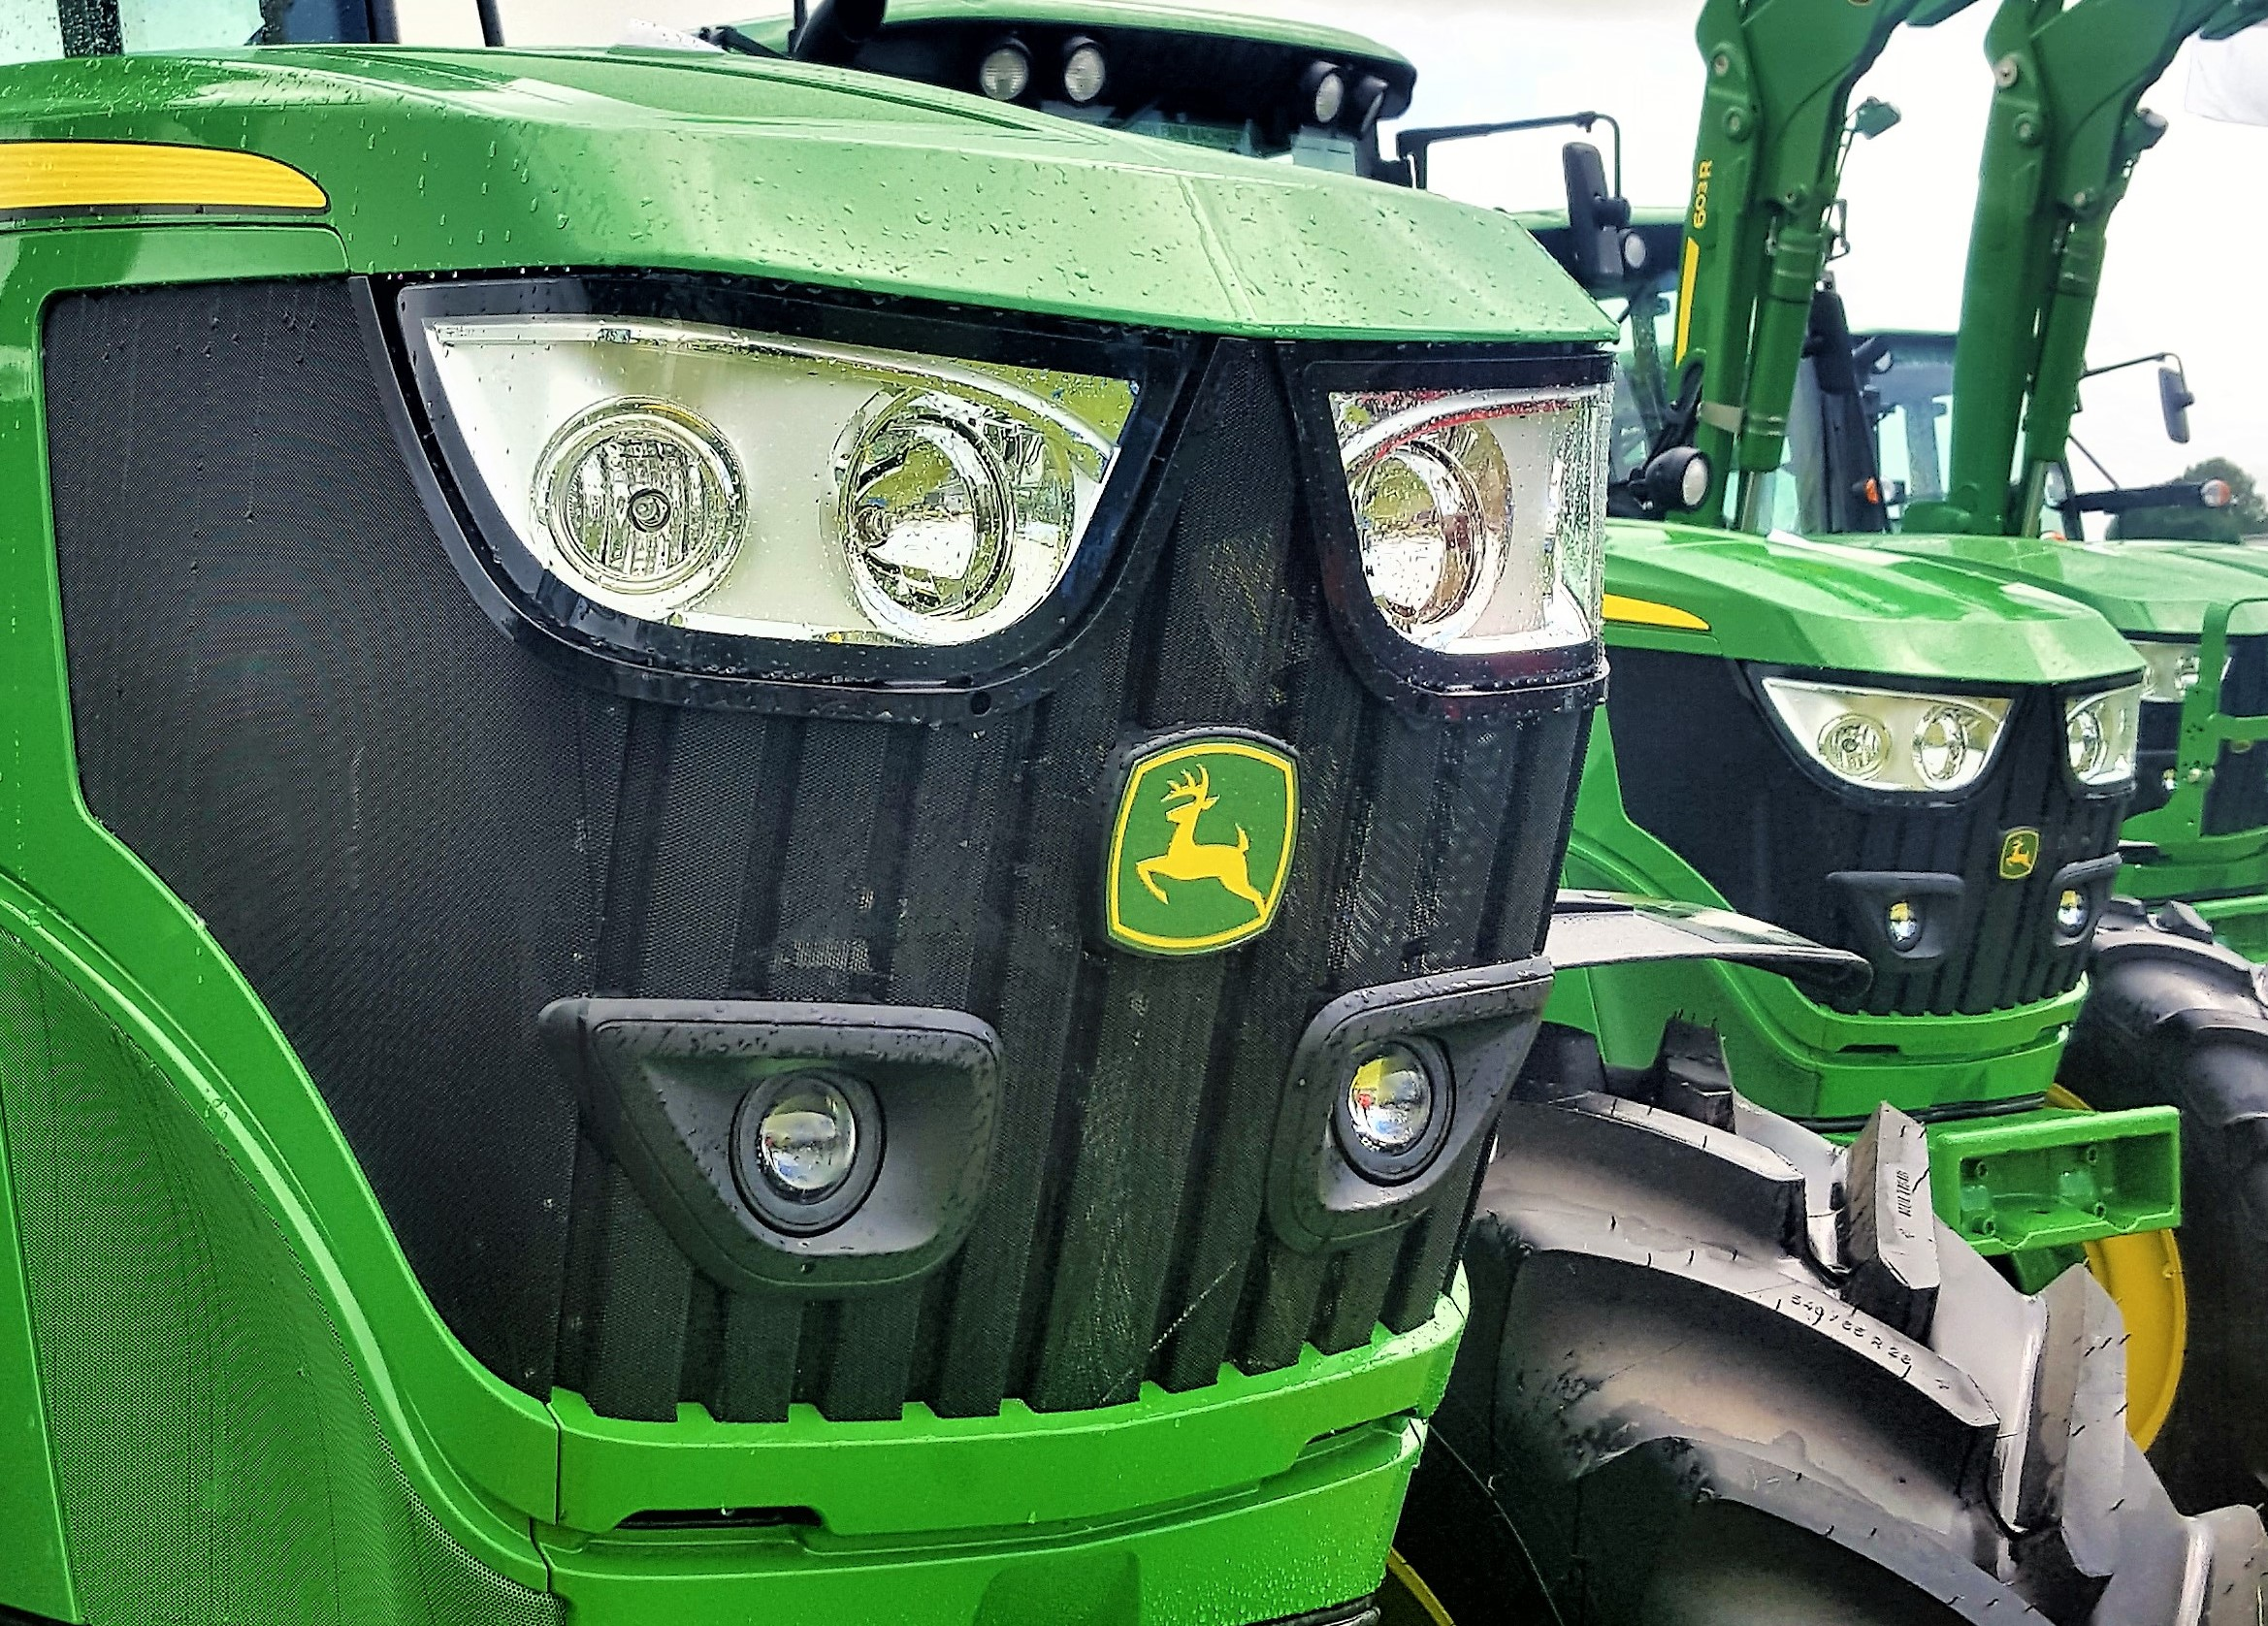 Details: Over 100 John Deere 6R/M Series tractors to go to auction